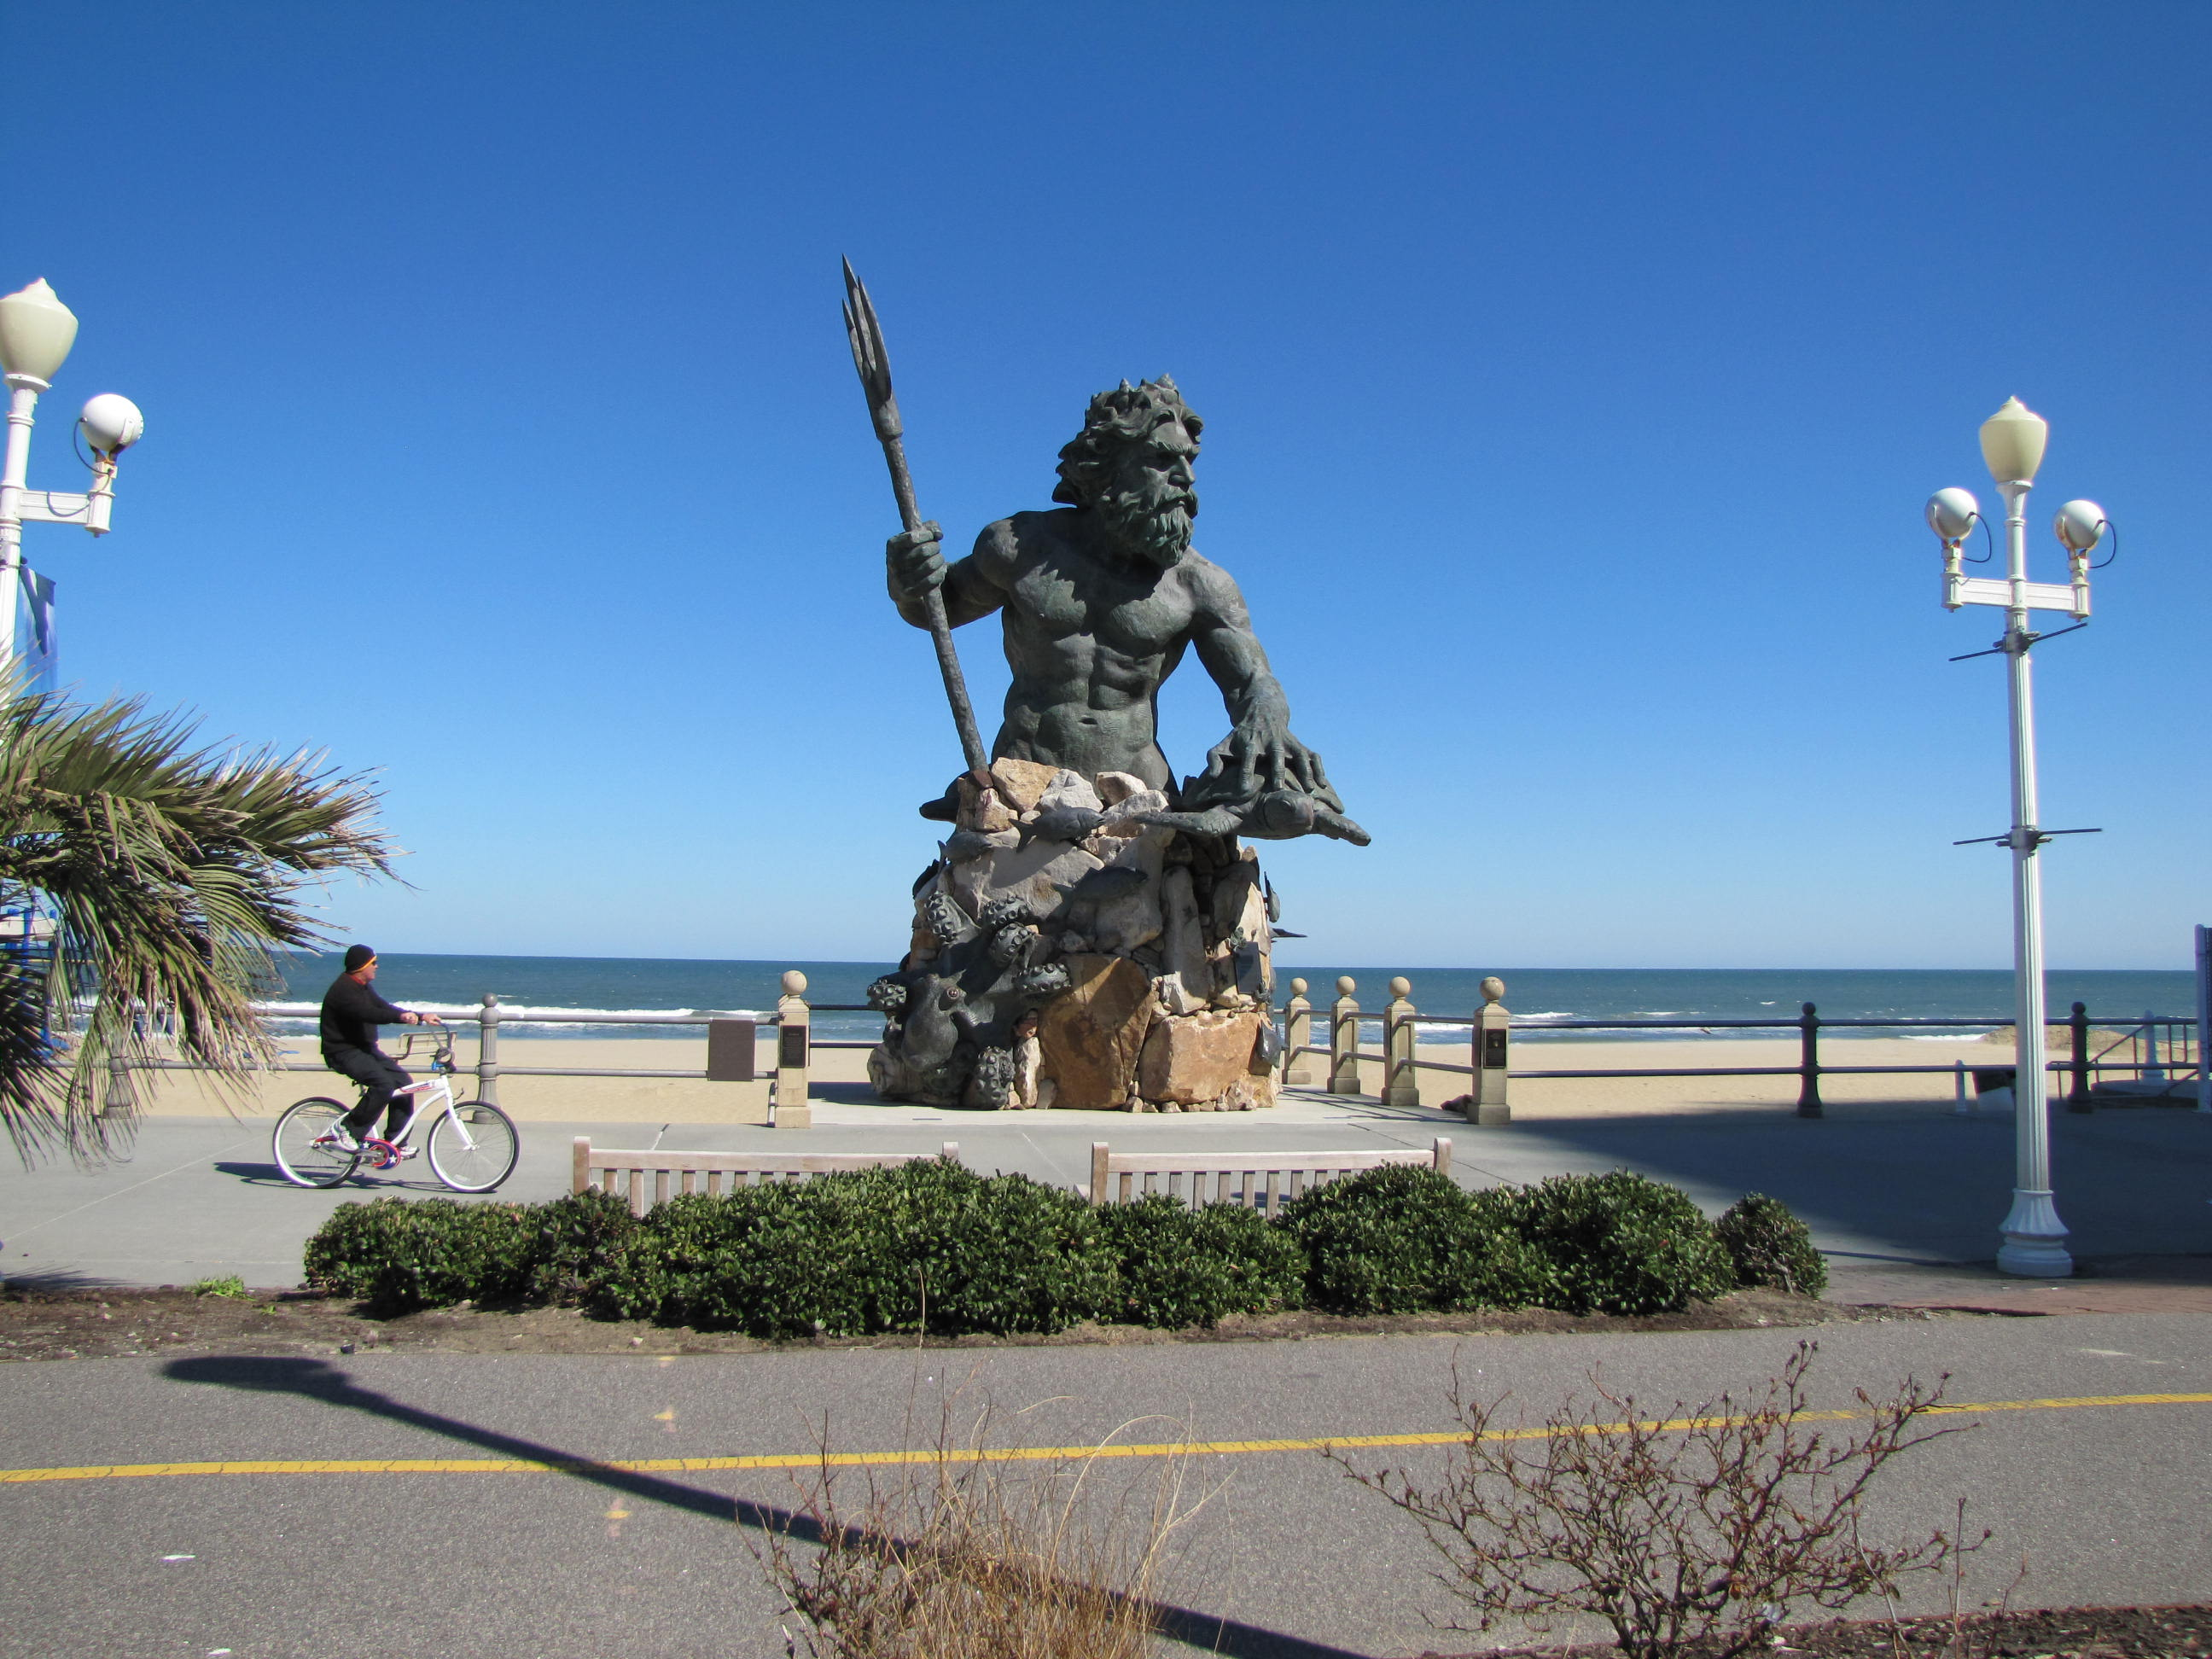 The colossal statue of King Neptune on the Virginia Beach